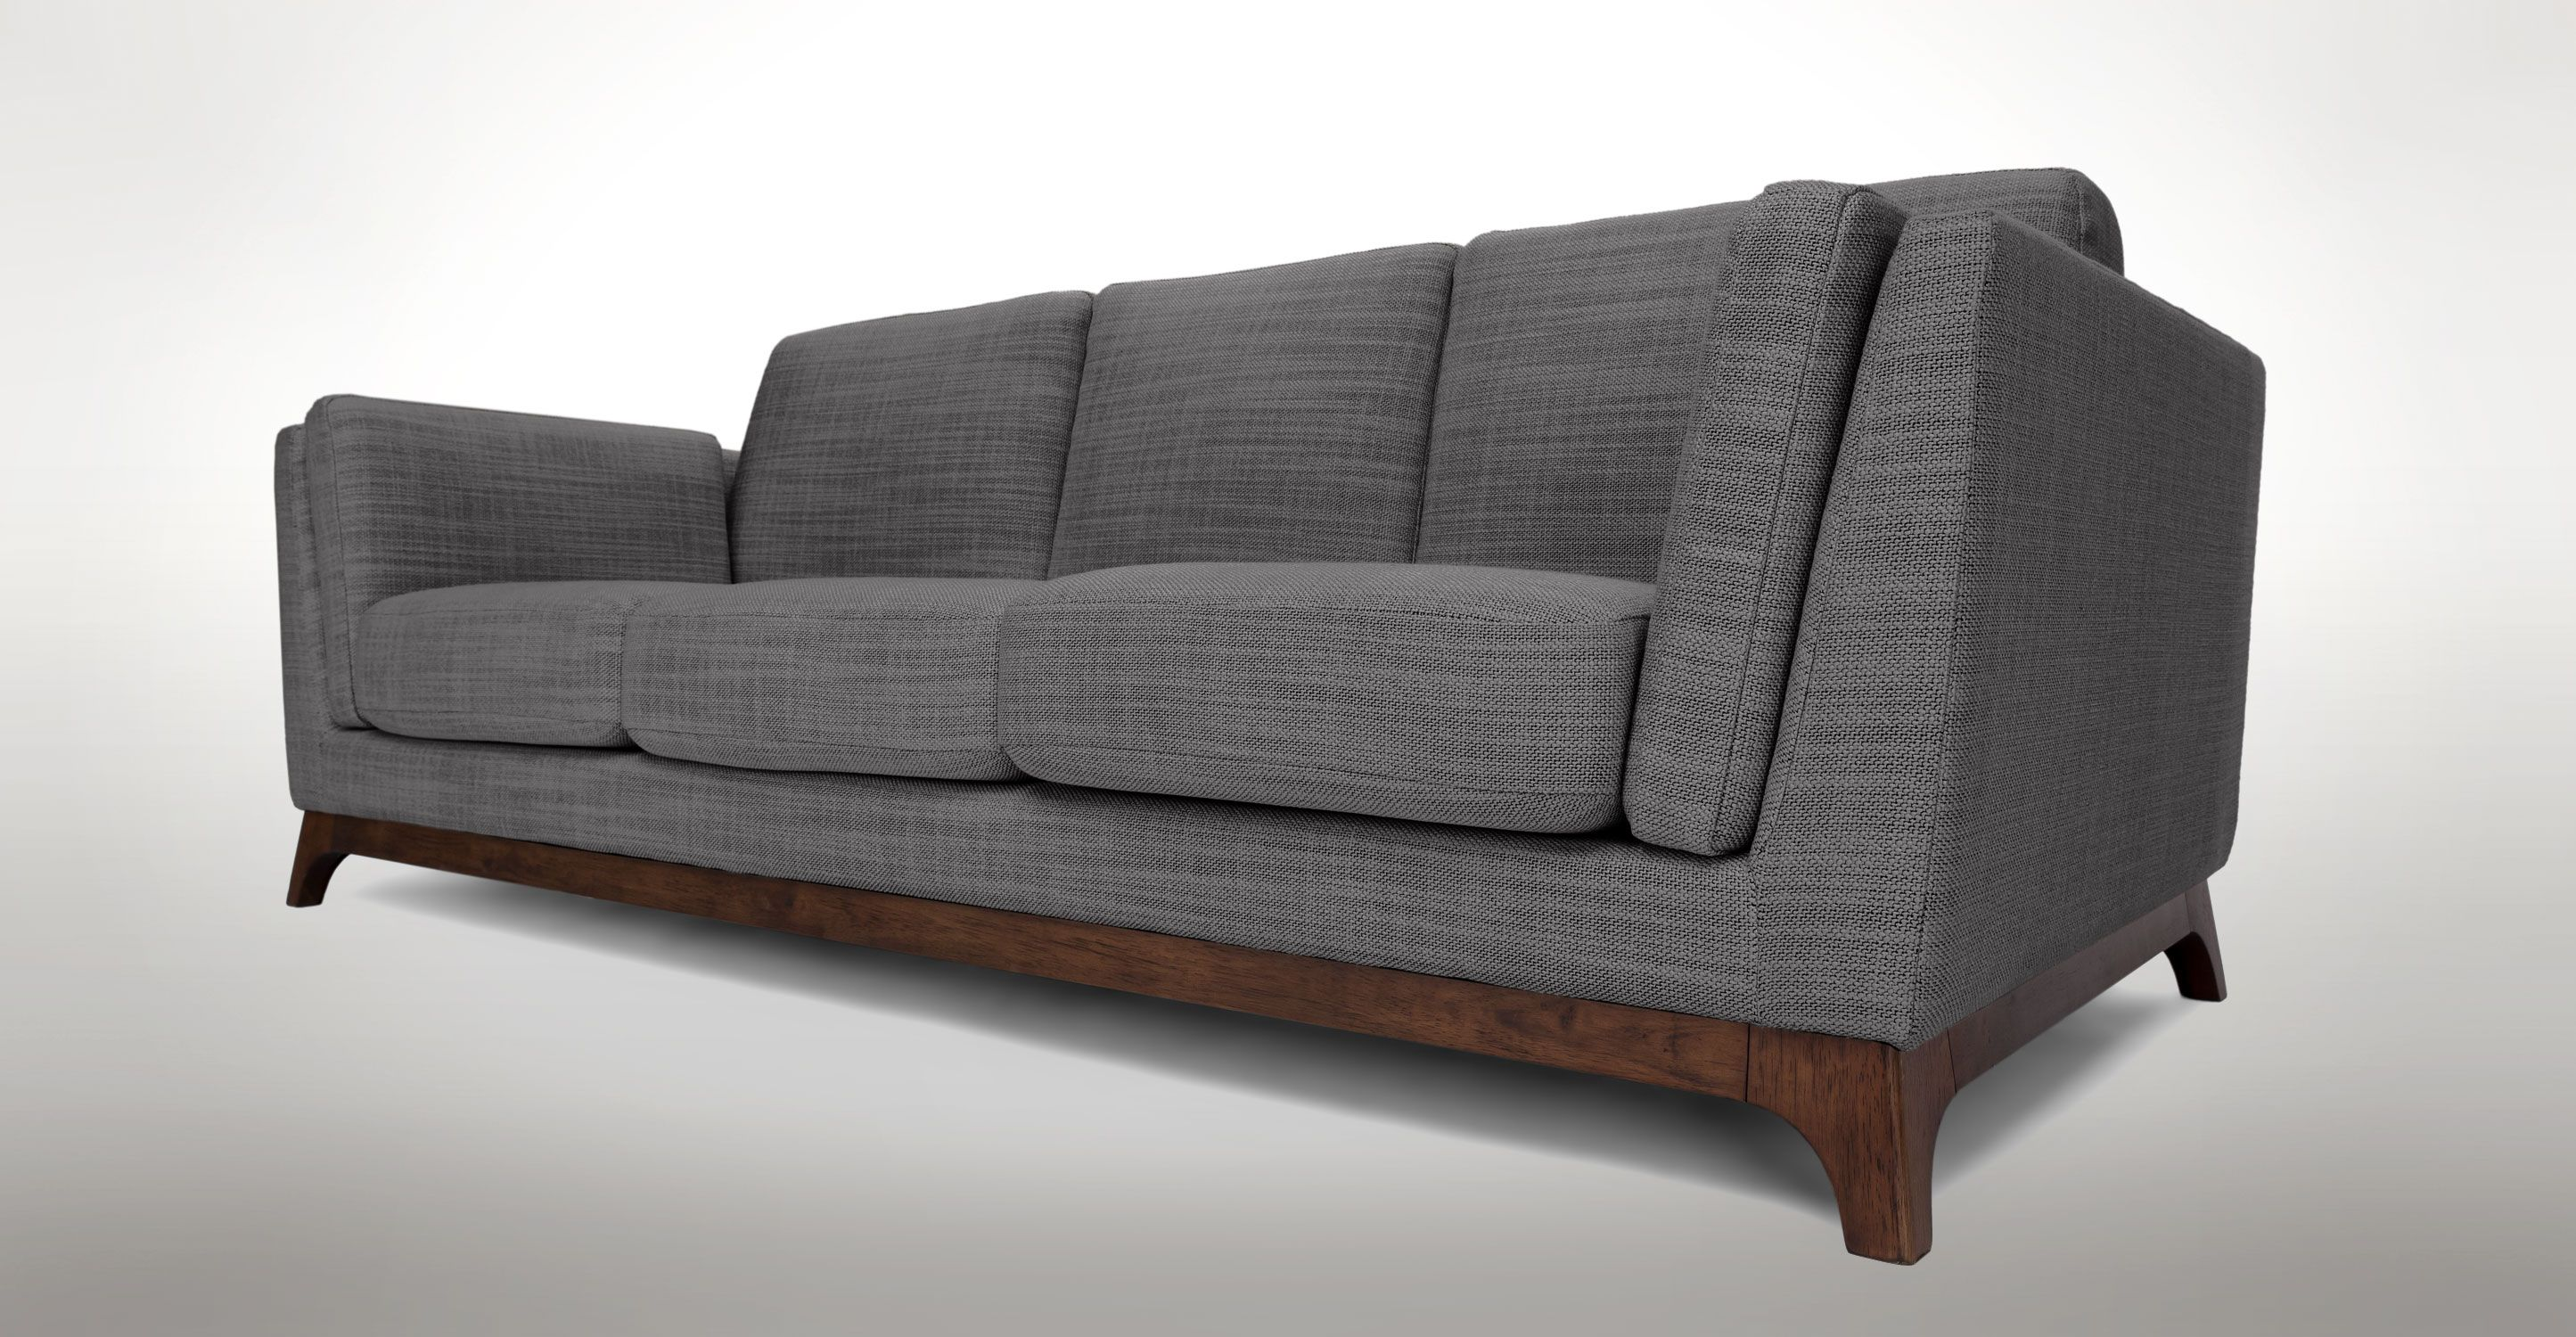 Gray Sofa 3 Seater With Solid Wood Legs